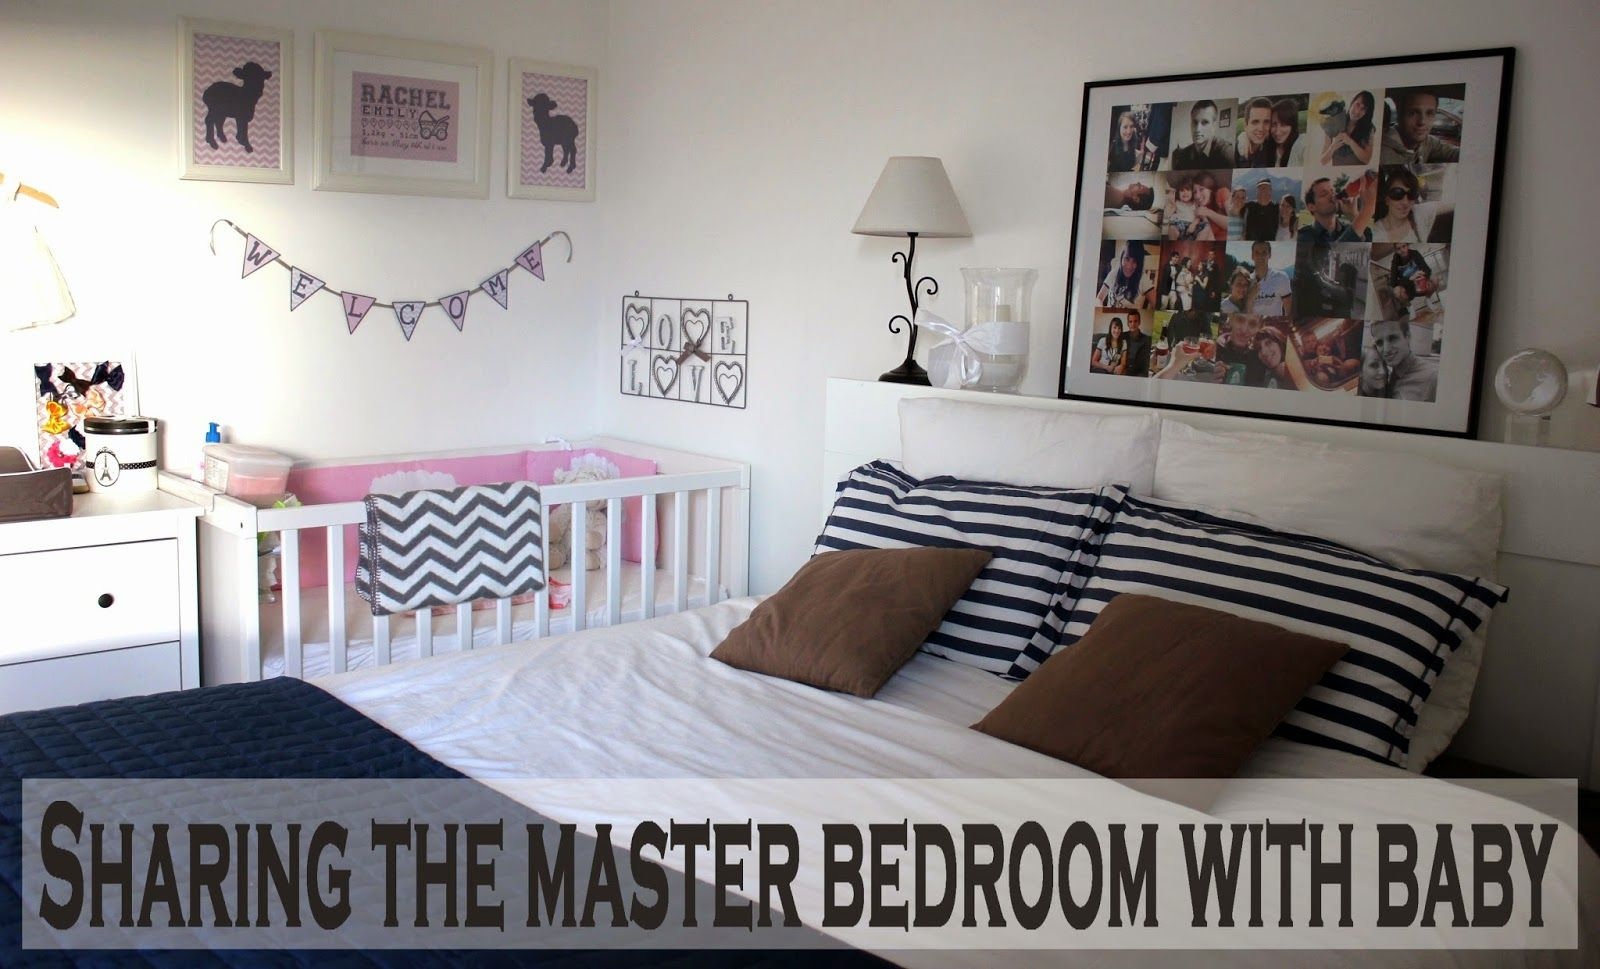 Baby Bedrooms Designs Sharing The Master Bedroom With Baby Parenting Baby